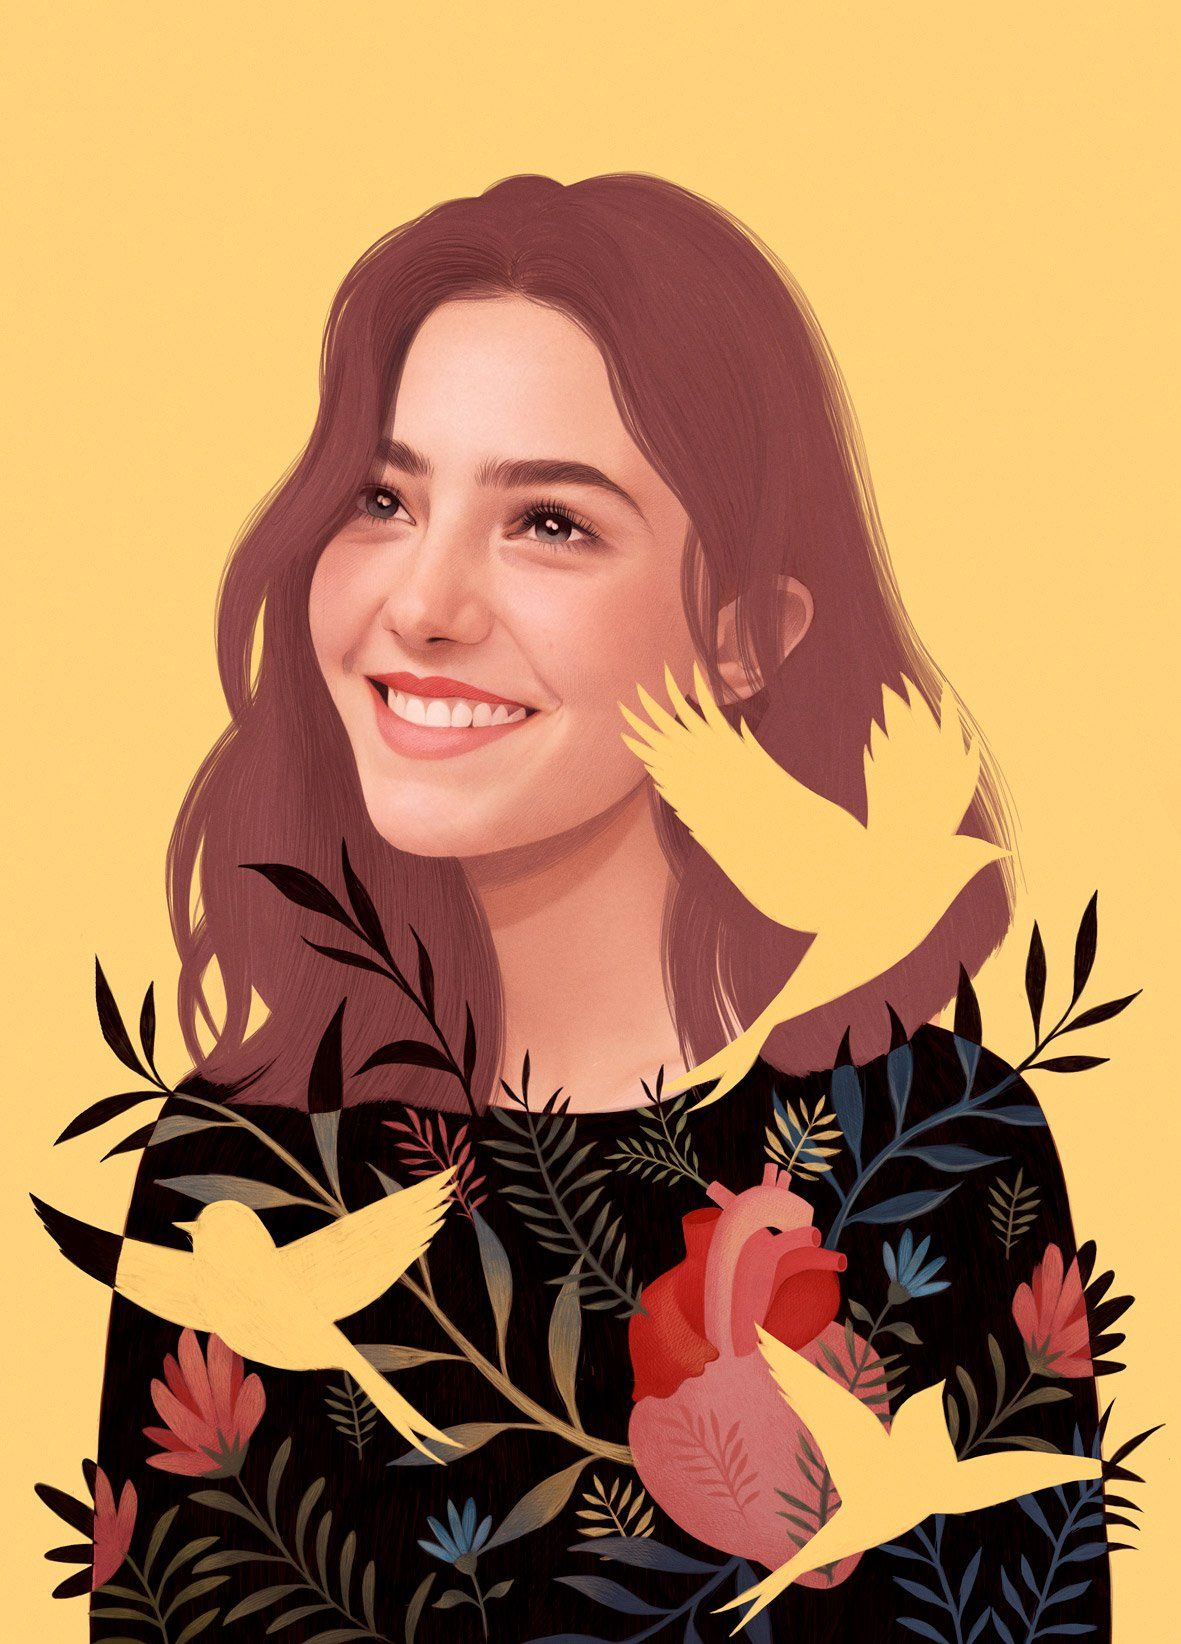 Illustrated Portraits by Mercedes deBellard | Inspiration Grid